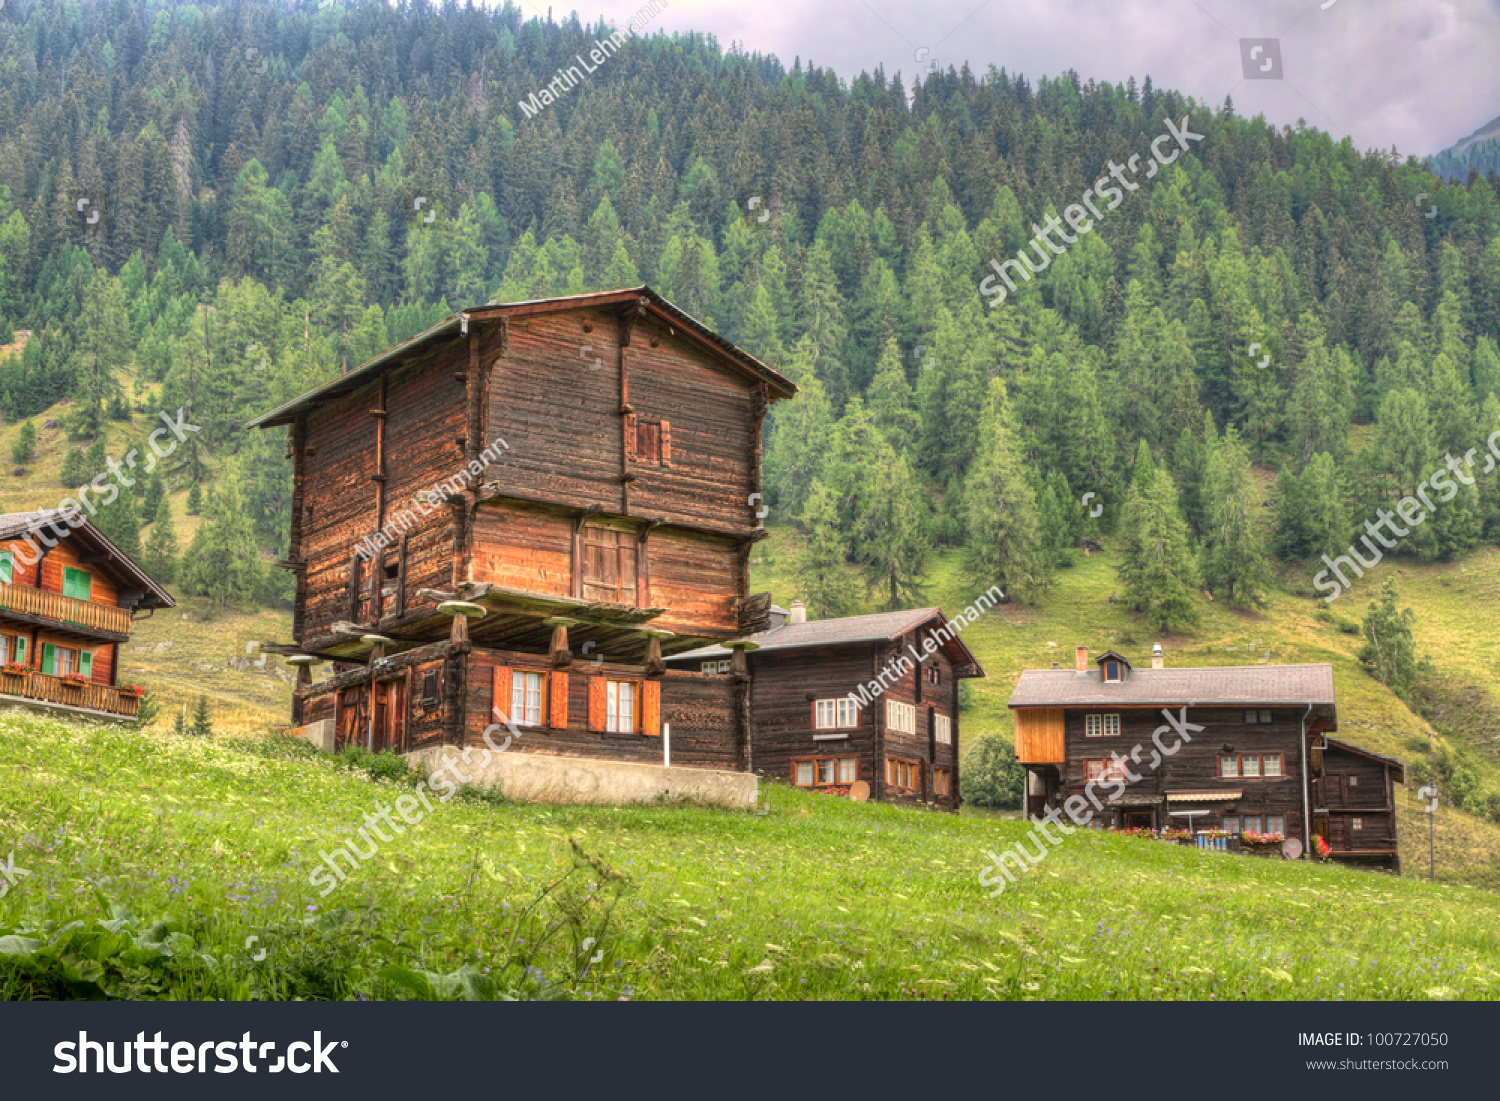 Small swiss village settlement withered wooden stock photo 100727050 shutterstock - The tiny house village a miniature settlement ...